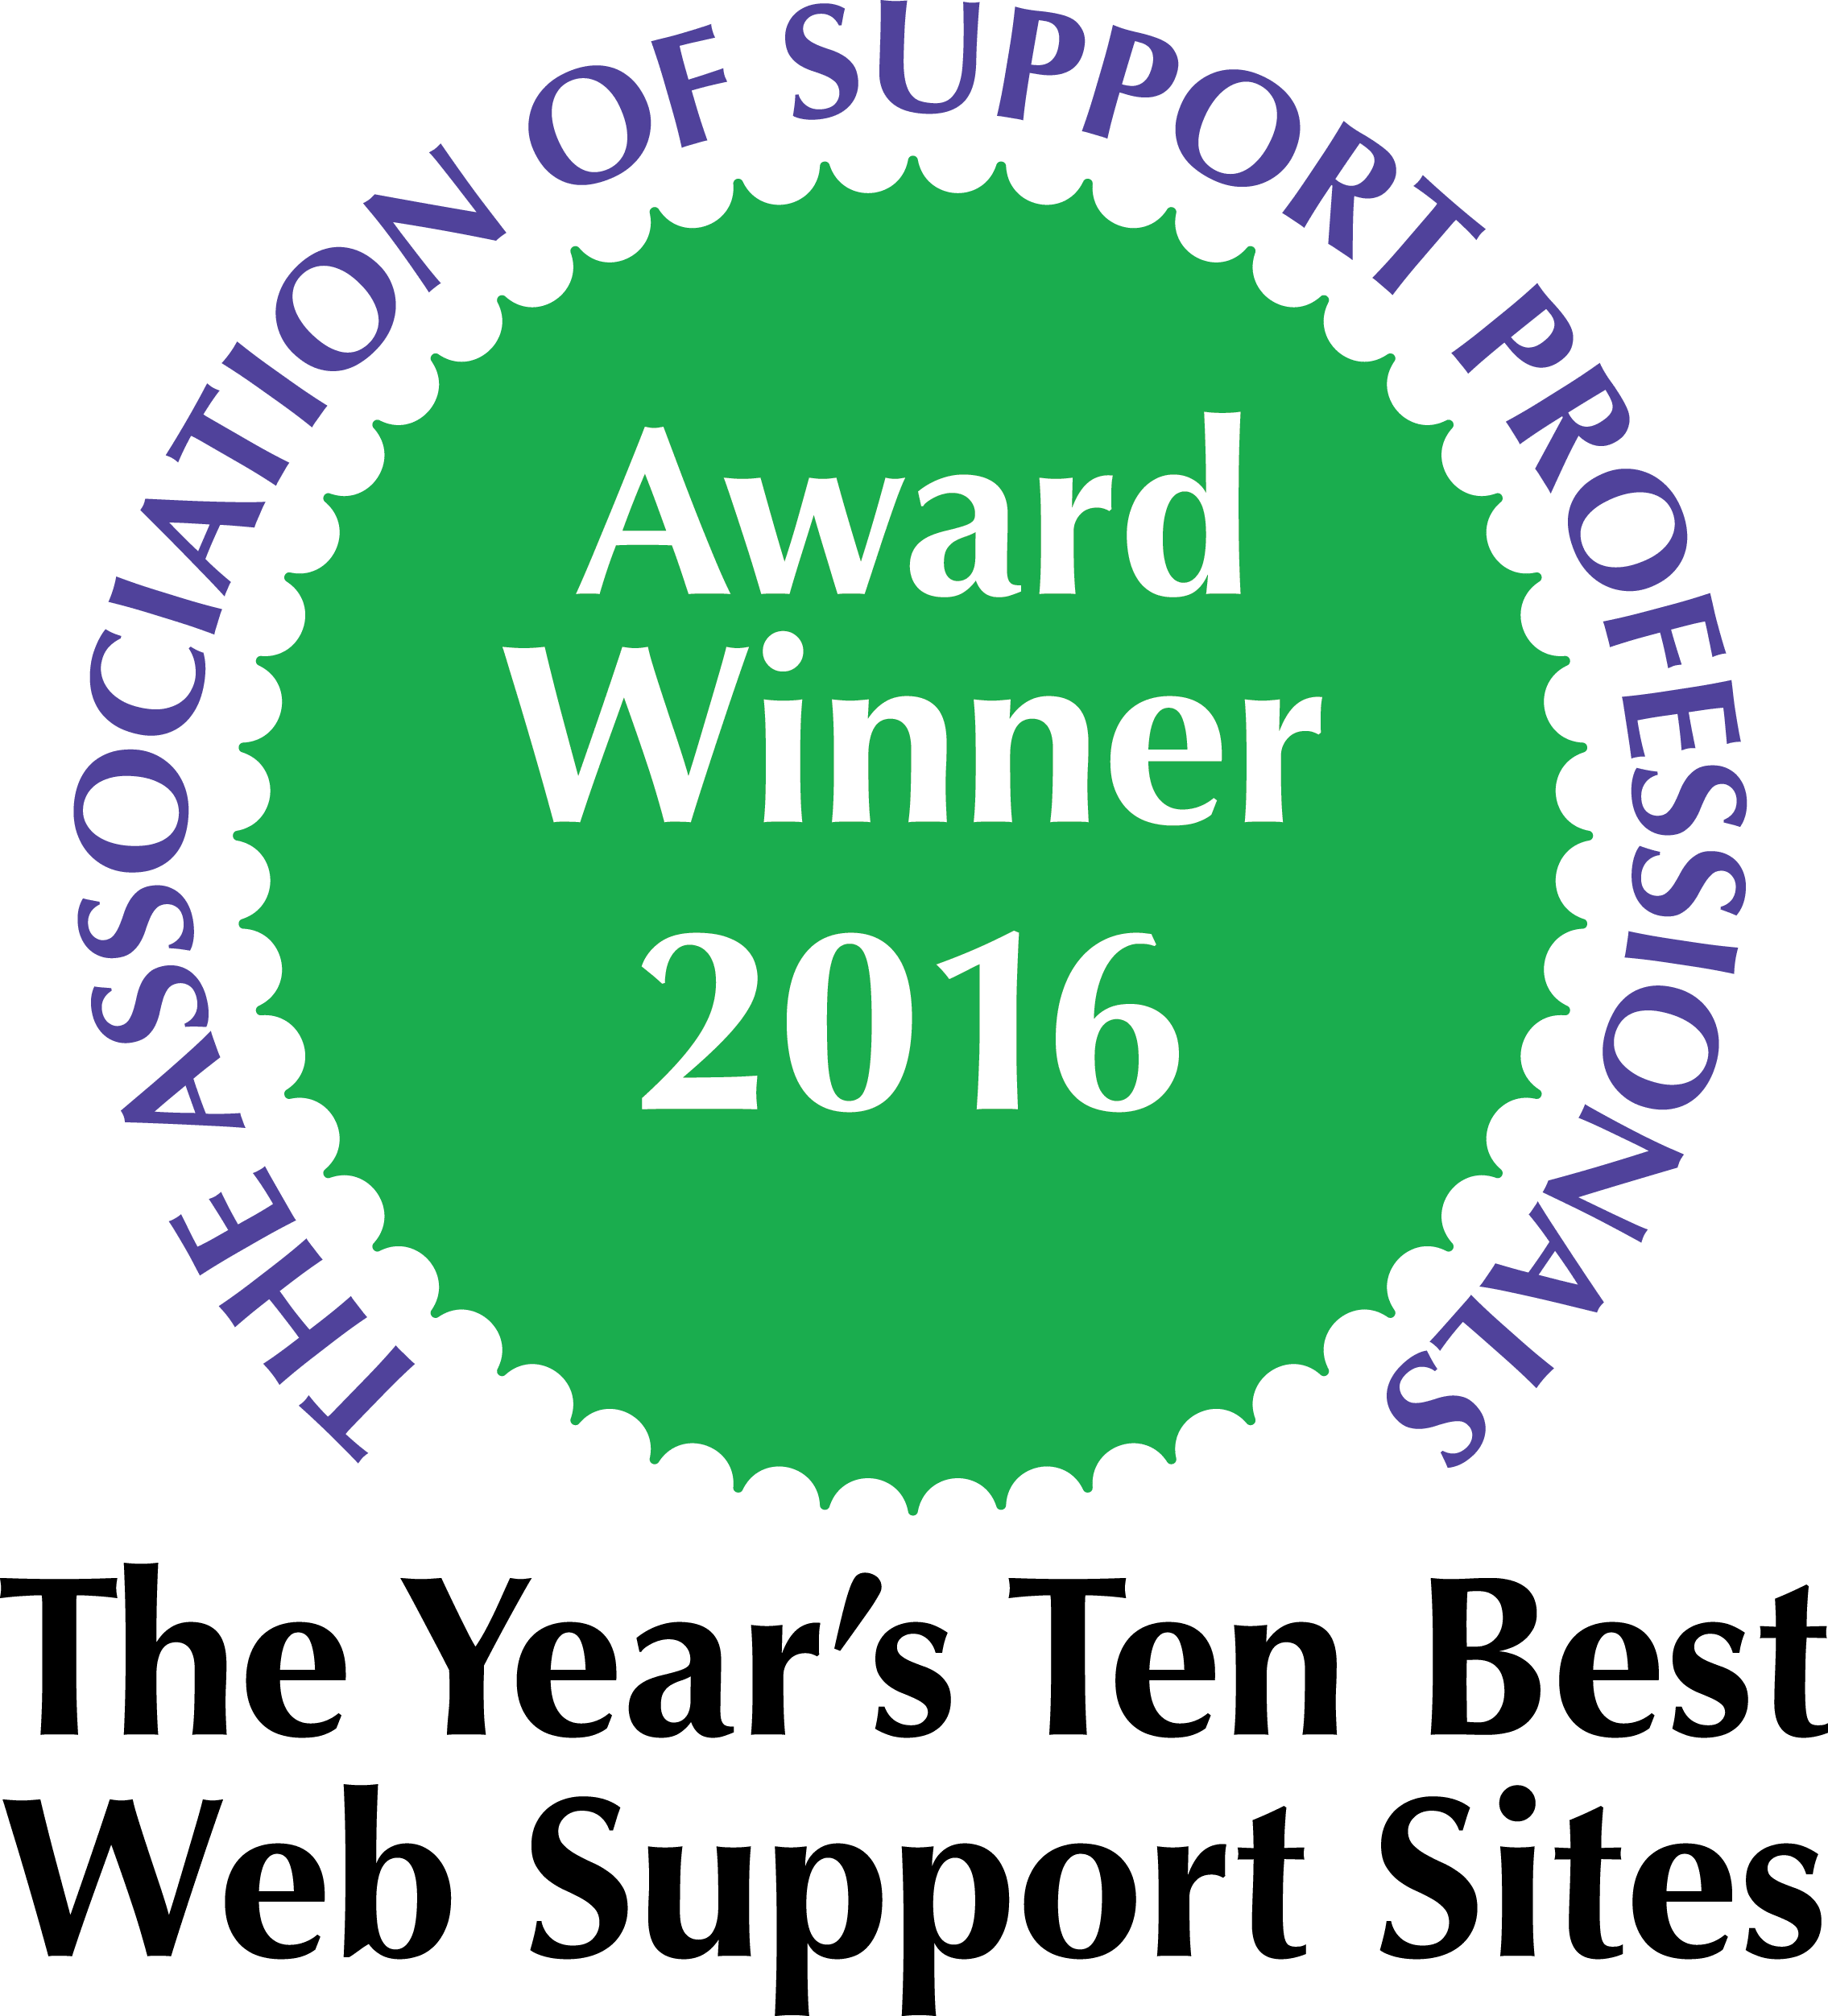 Best Web Support Site Award